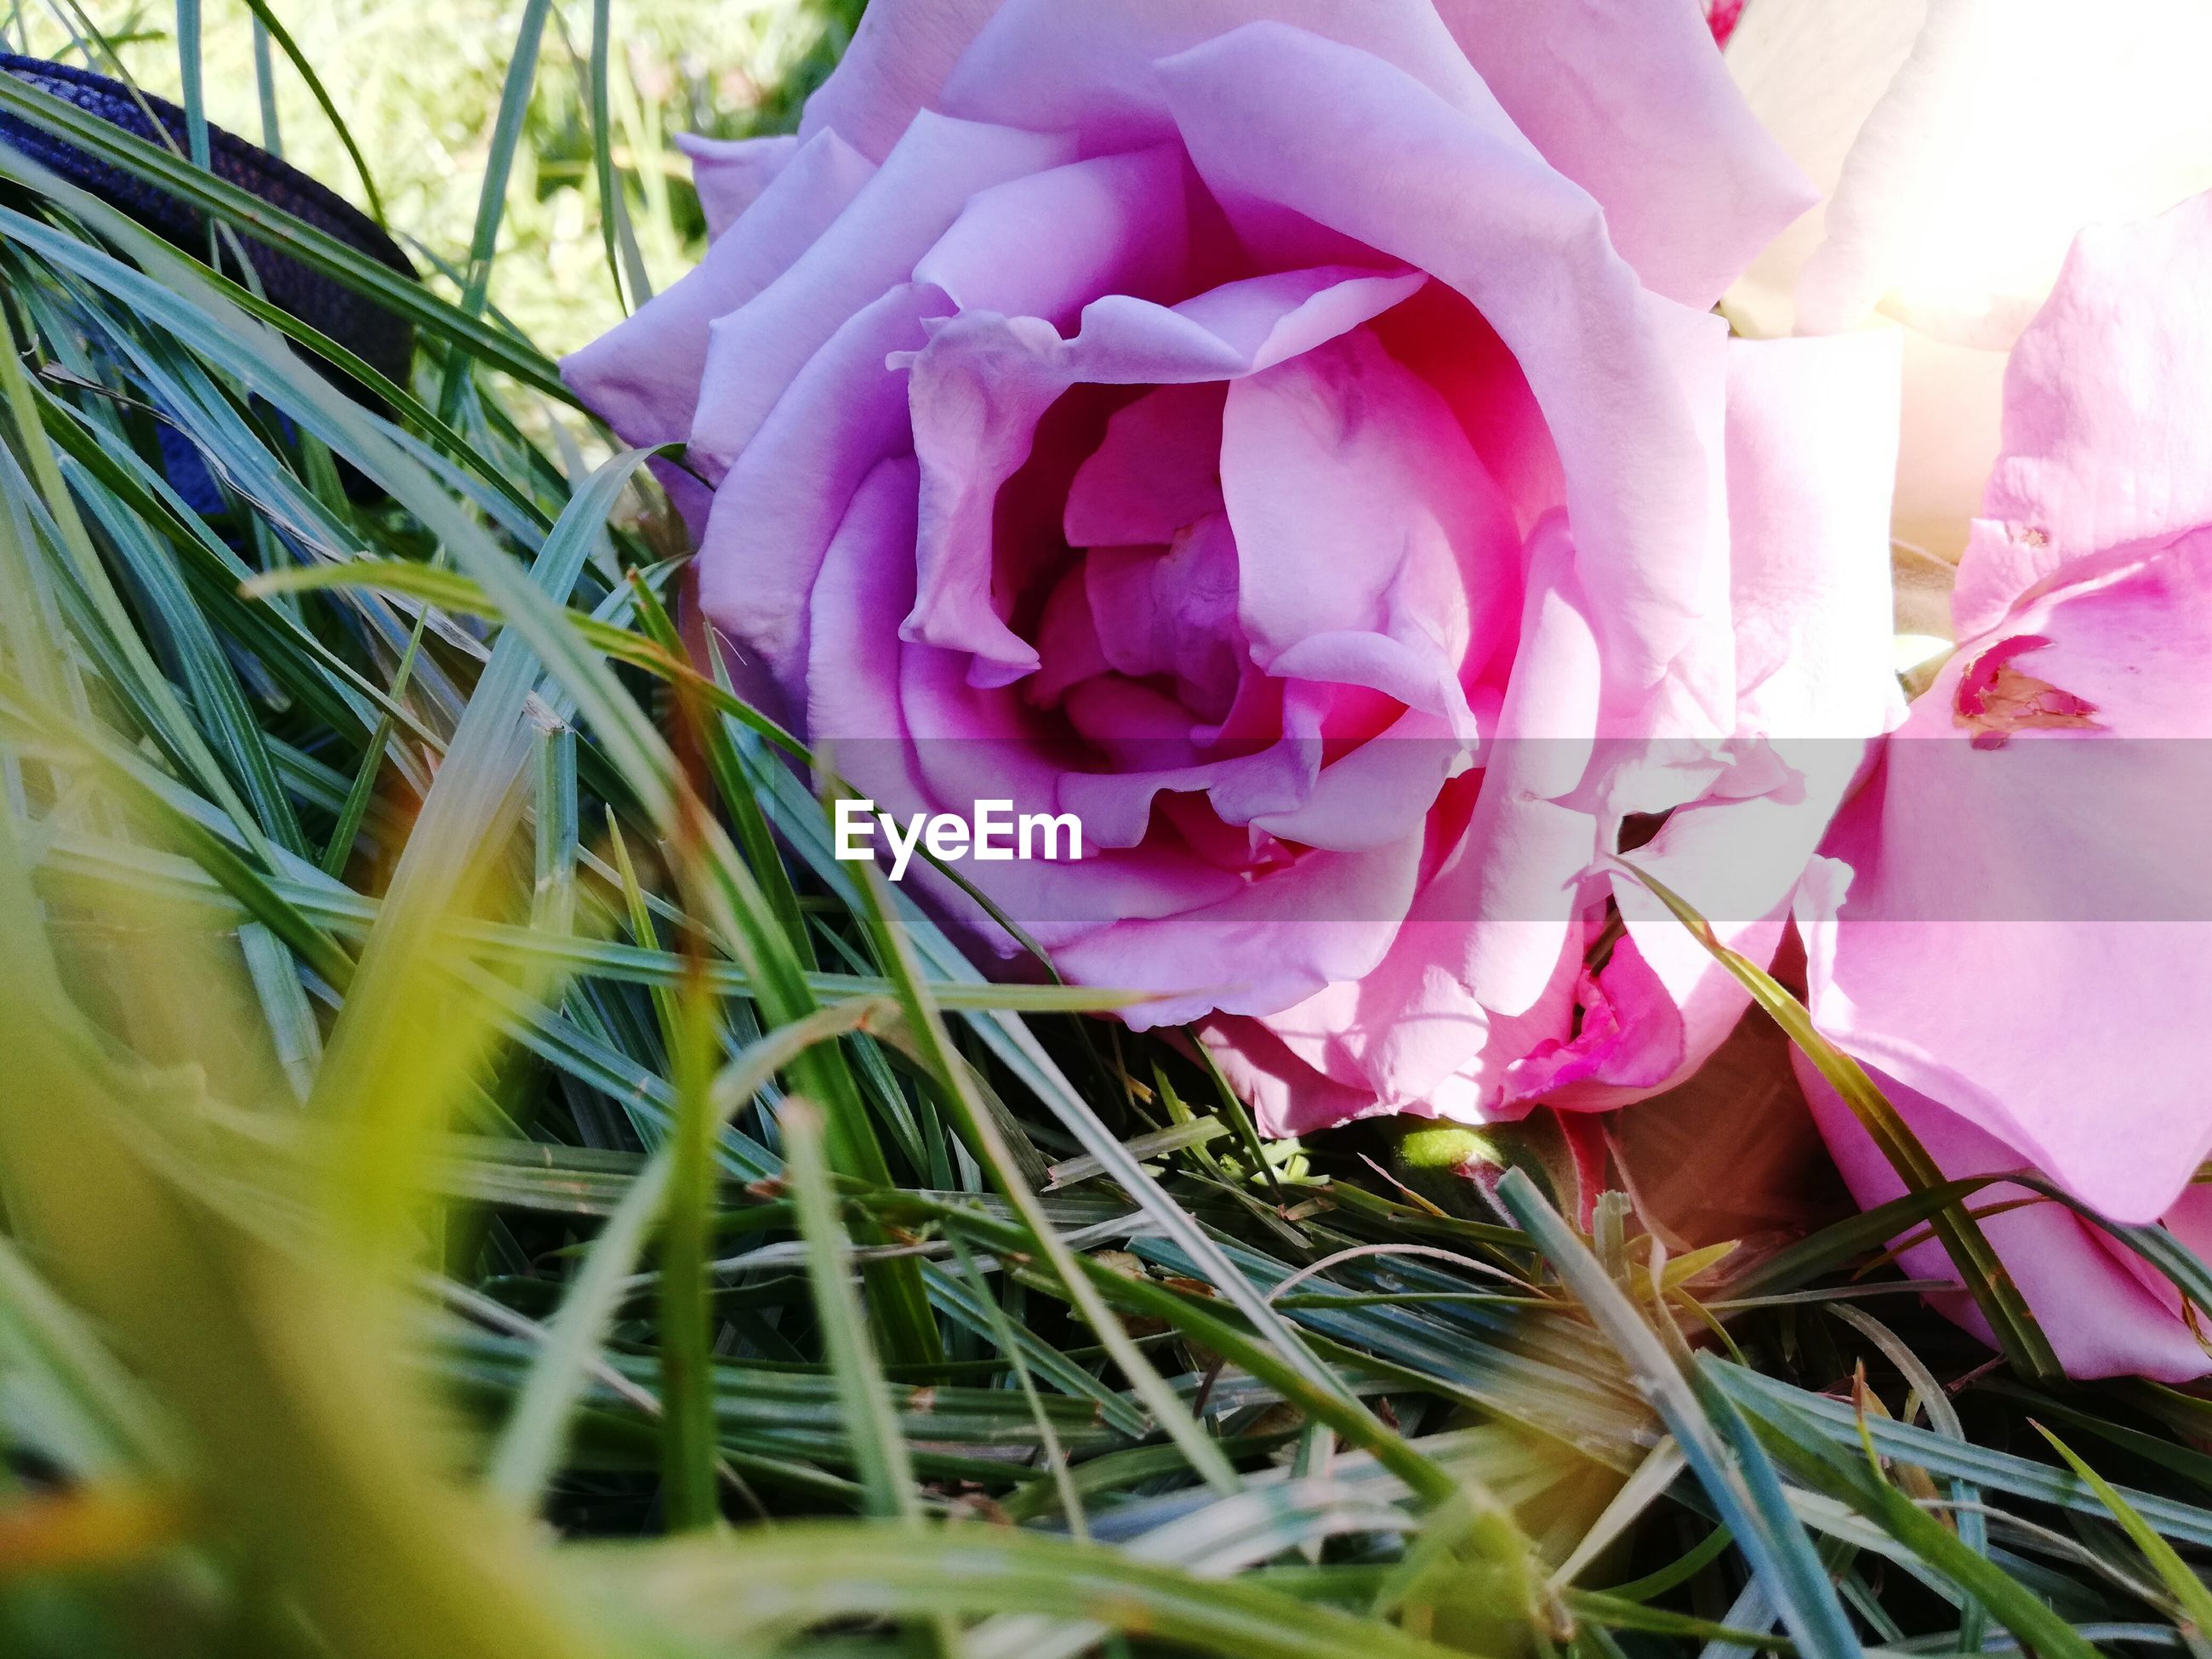 flower, nature, beauty in nature, petal, fragility, pink color, flower head, freshness, close-up, plant, day, growth, outdoors, rose - flower, no people, bouquet, grass